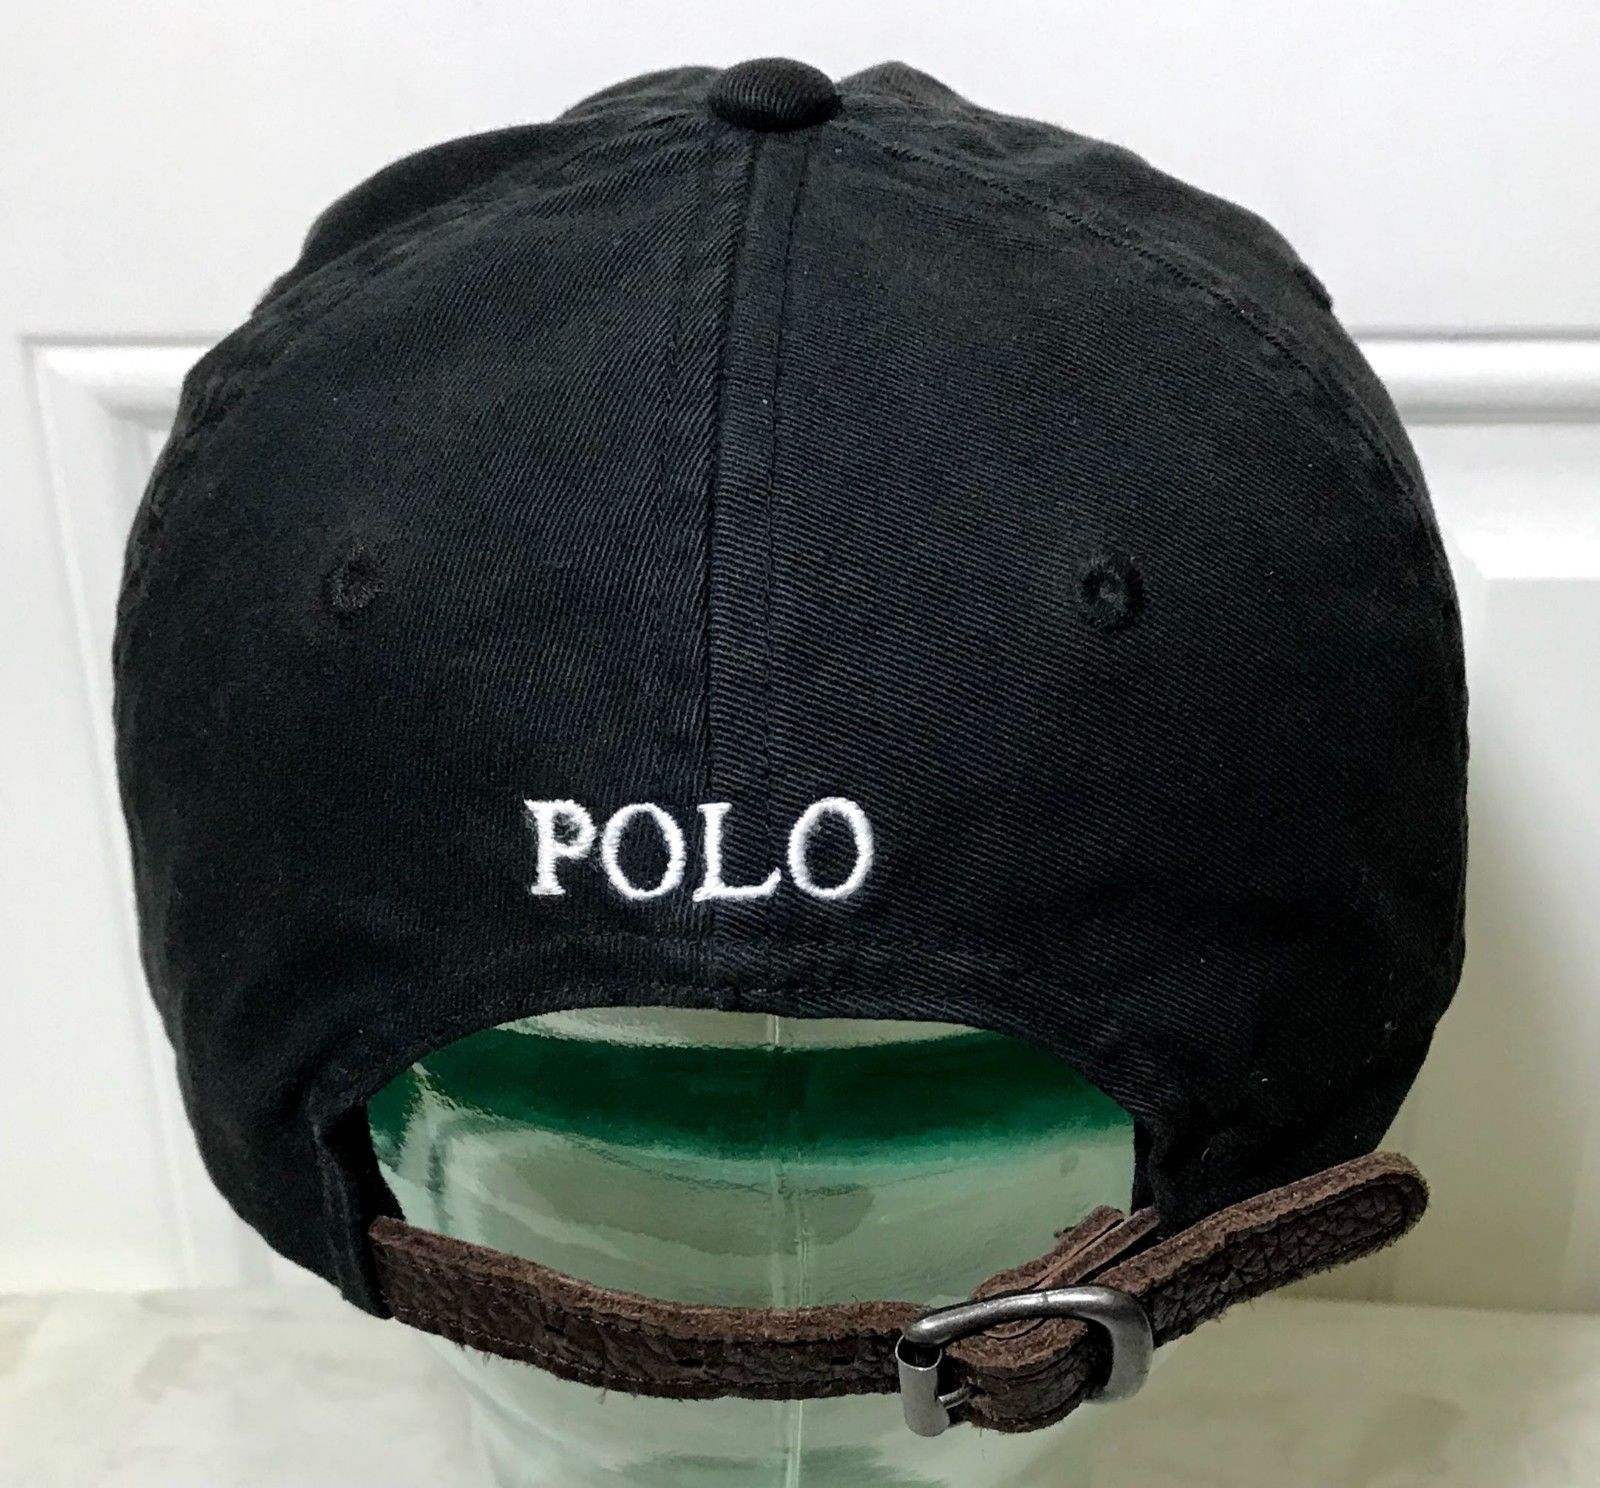 bb3a6bb03a876 Polo Ralph Lauren Hat Leather Strap Pony Black Vintage 90s Dad Cap Spell  Out